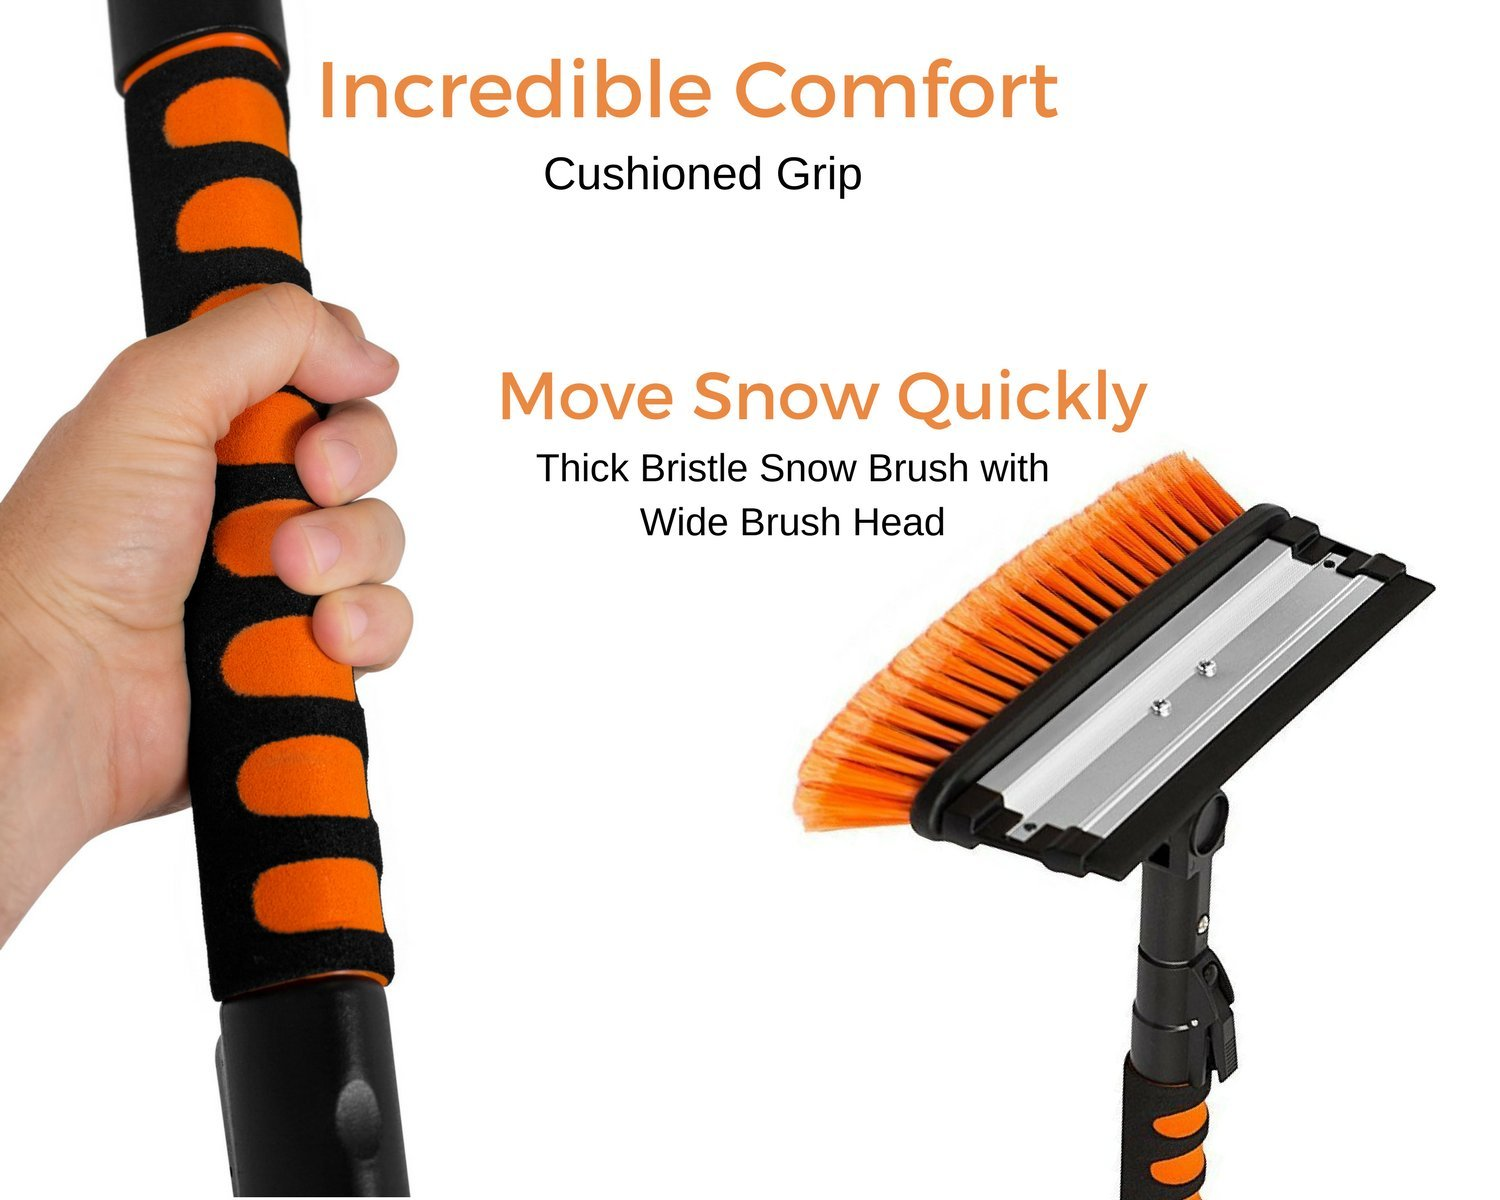 Snow Moover 39 Extendable Snow Brush with Squeegee /& Ice Scraper Car Truck SUV Auto Snow Brush Auto Ice Scraper Foam Grip